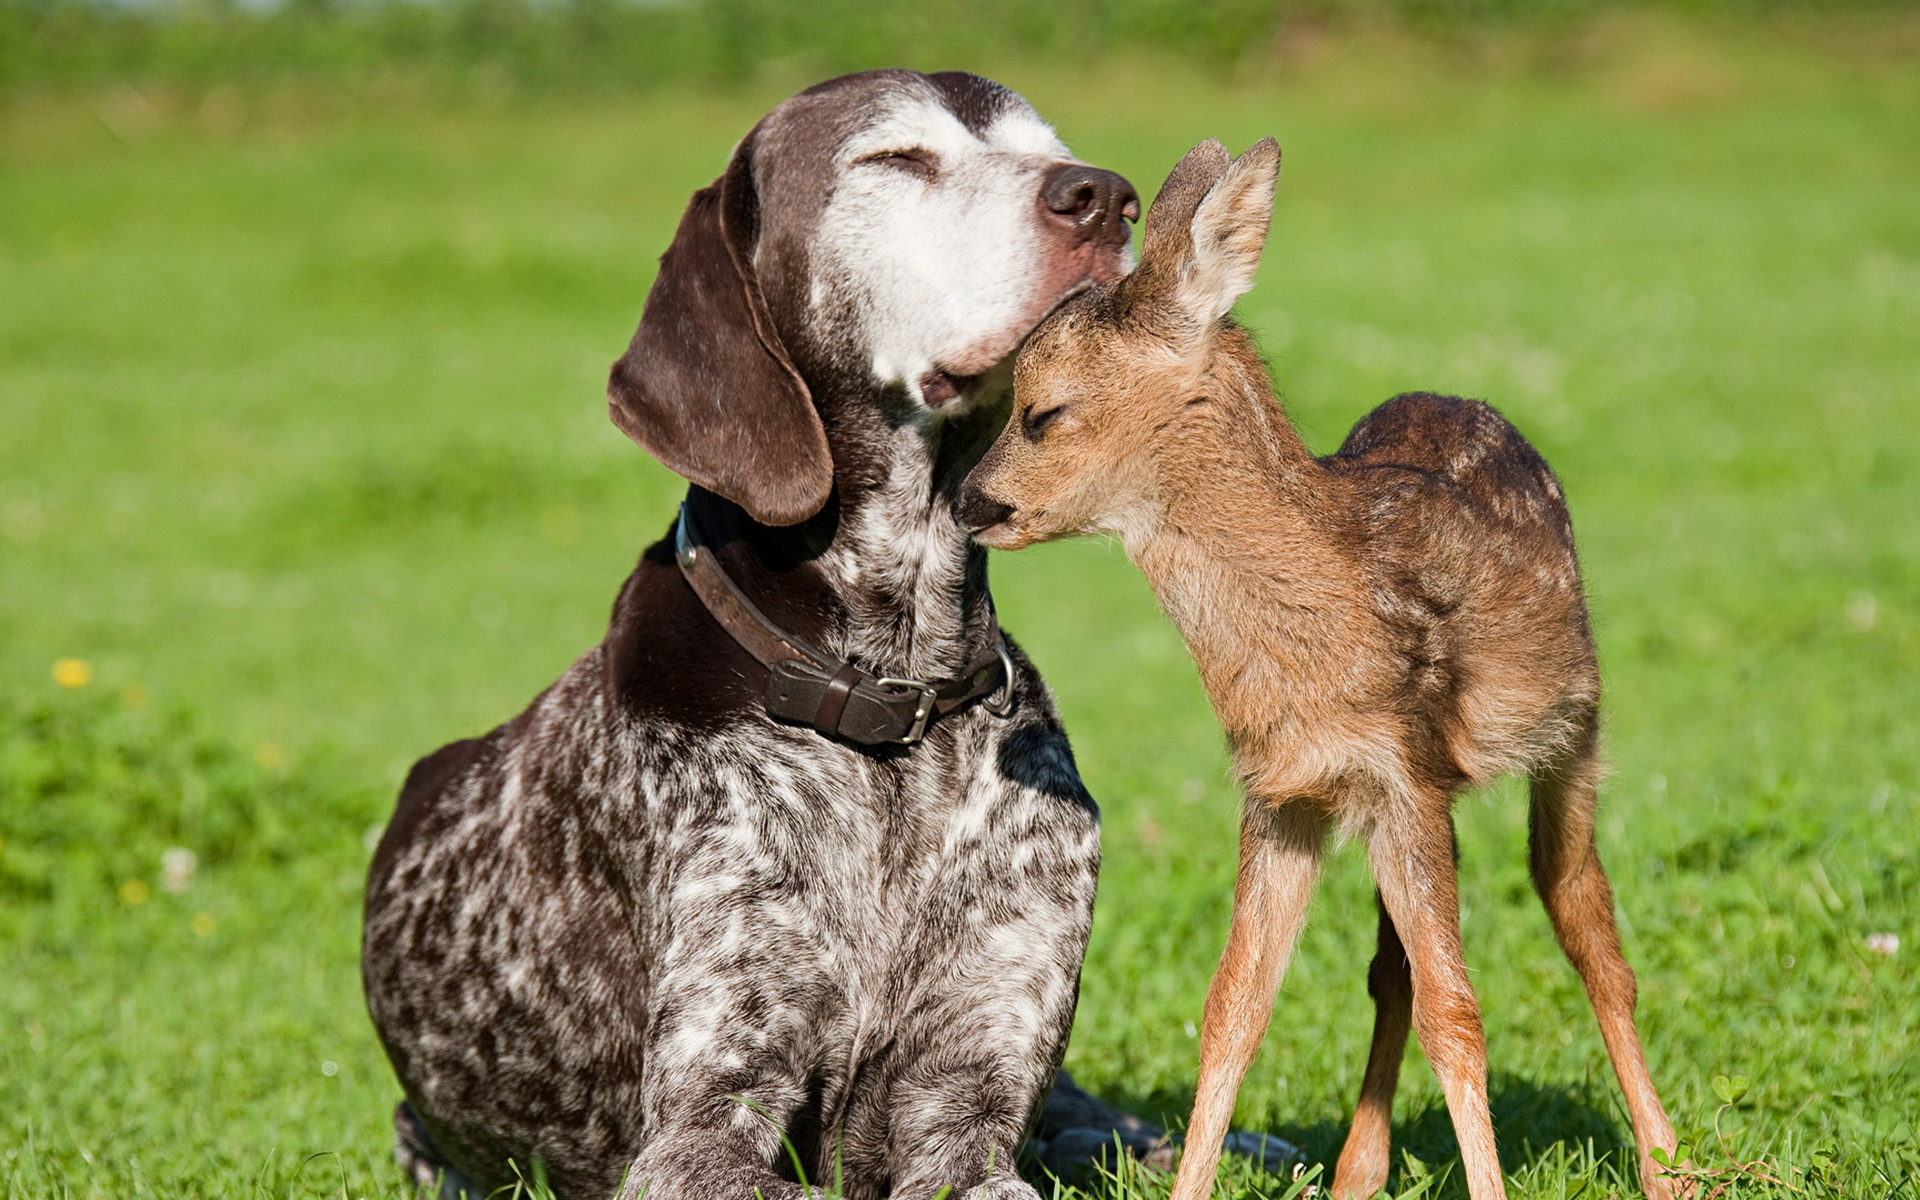 Dog and deer wallpapers and images   wallpapers pictures photos 1920x1200